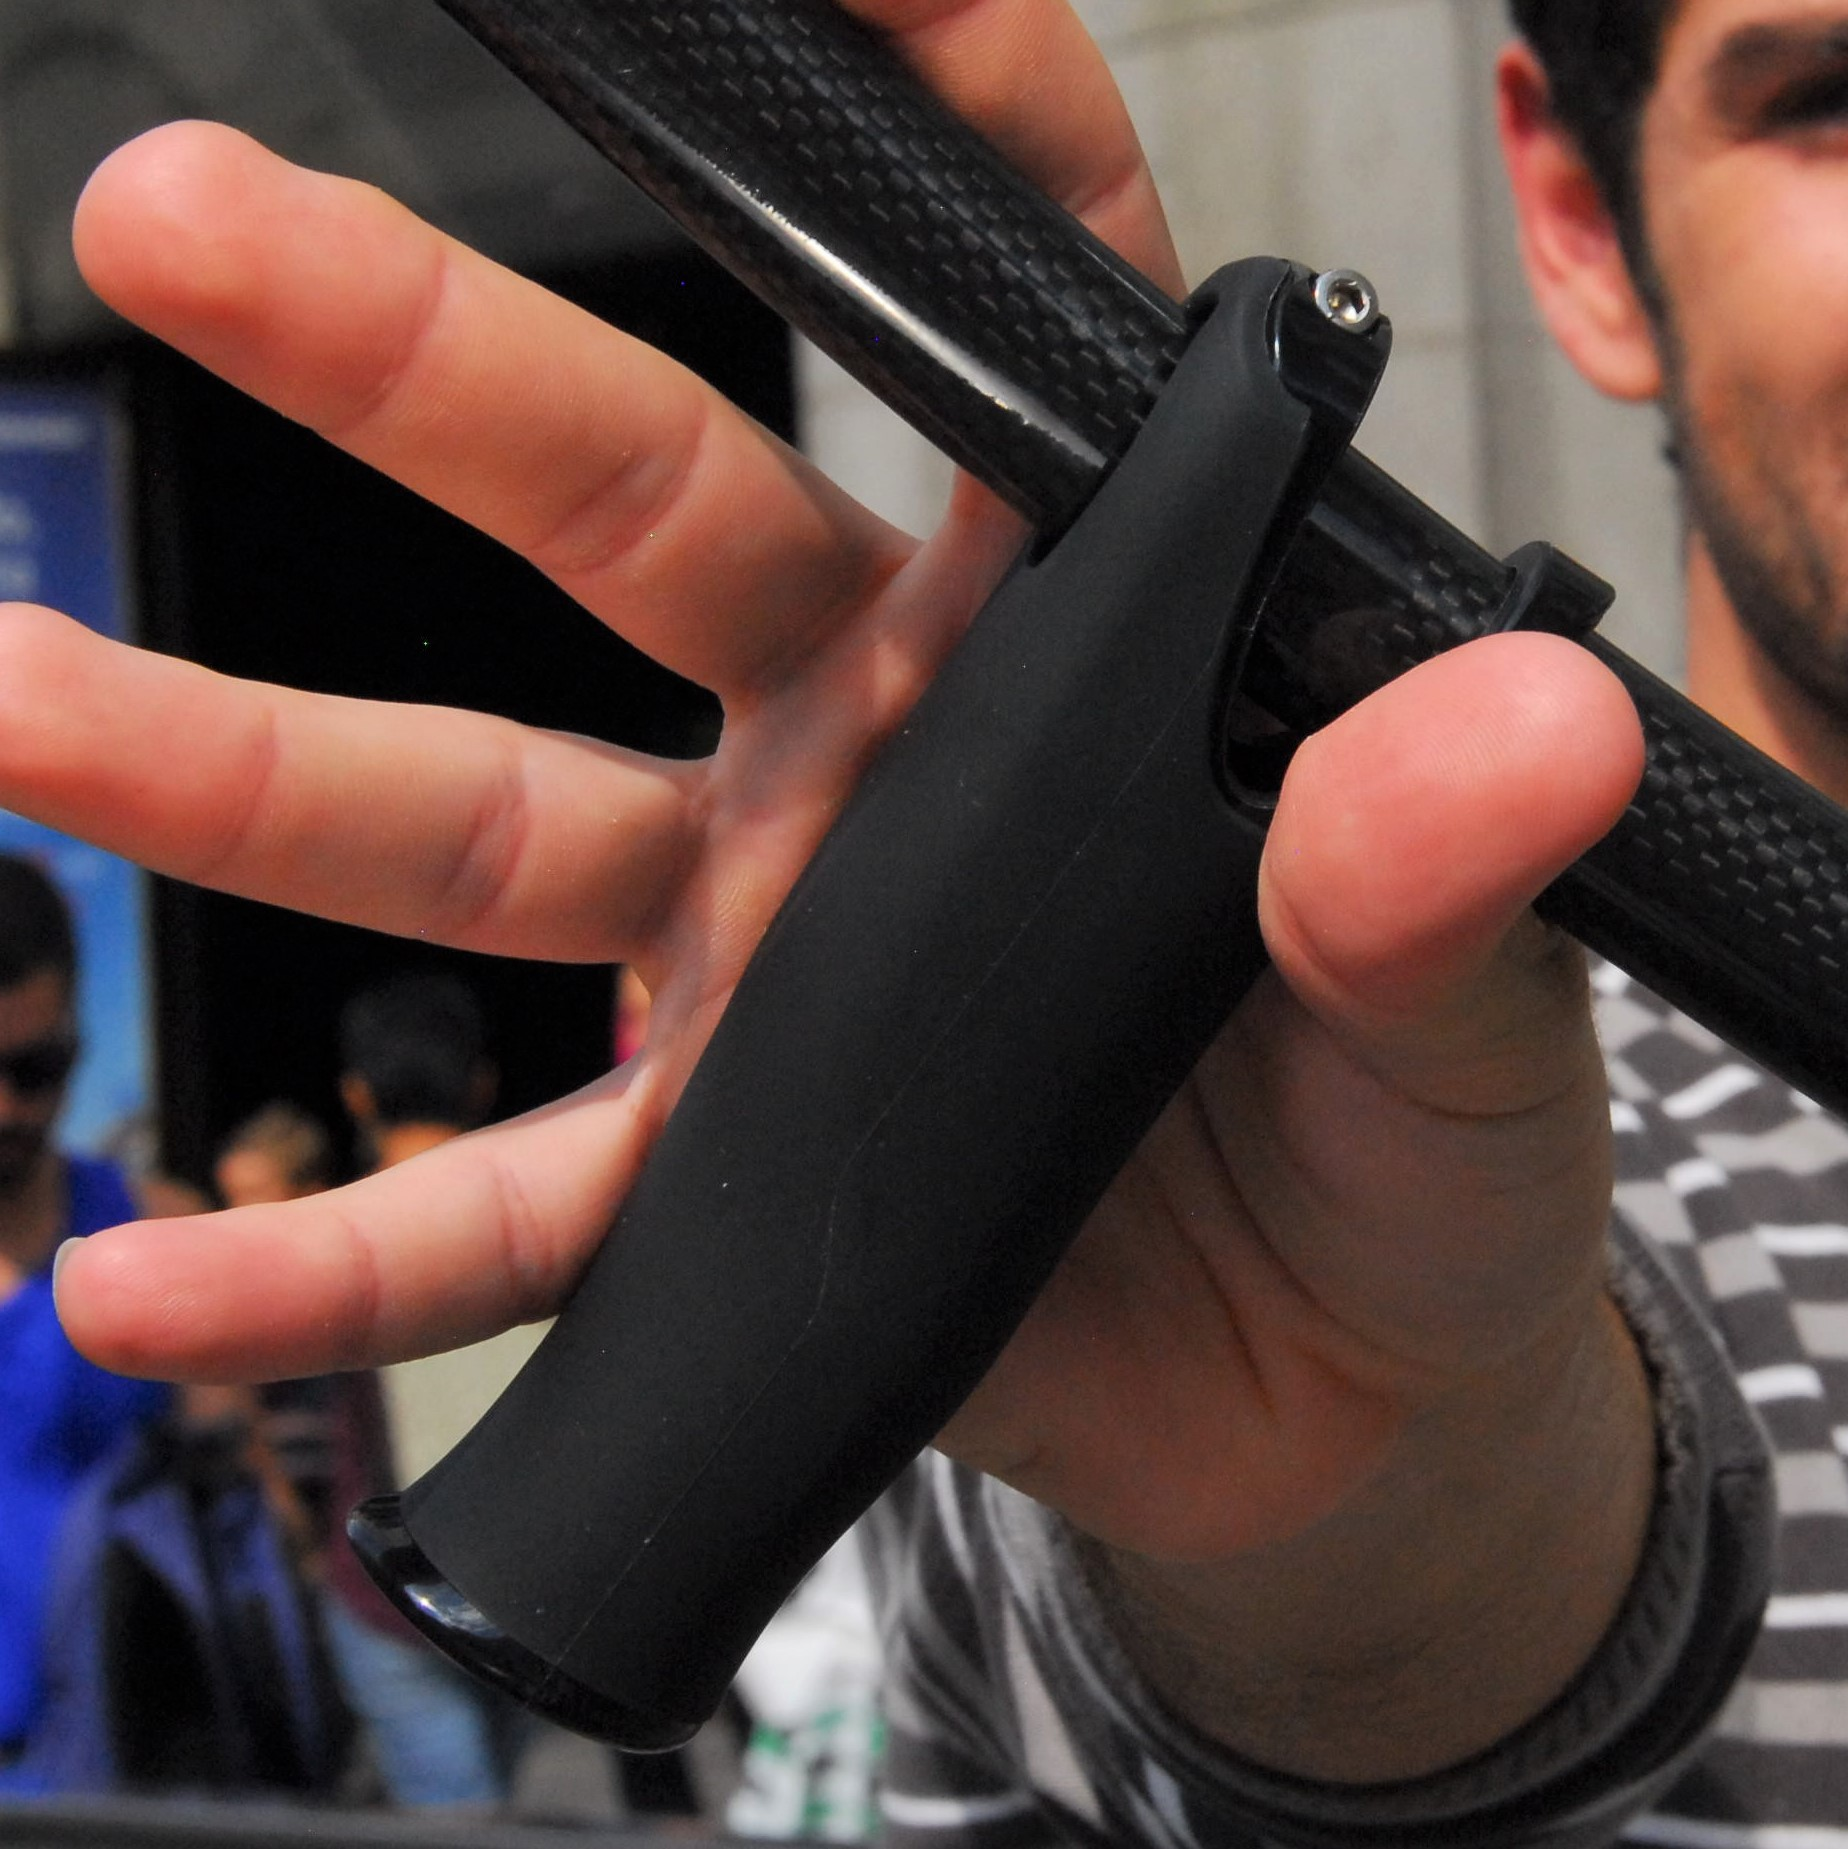 ergonomic soft handgrip for canes and crutches